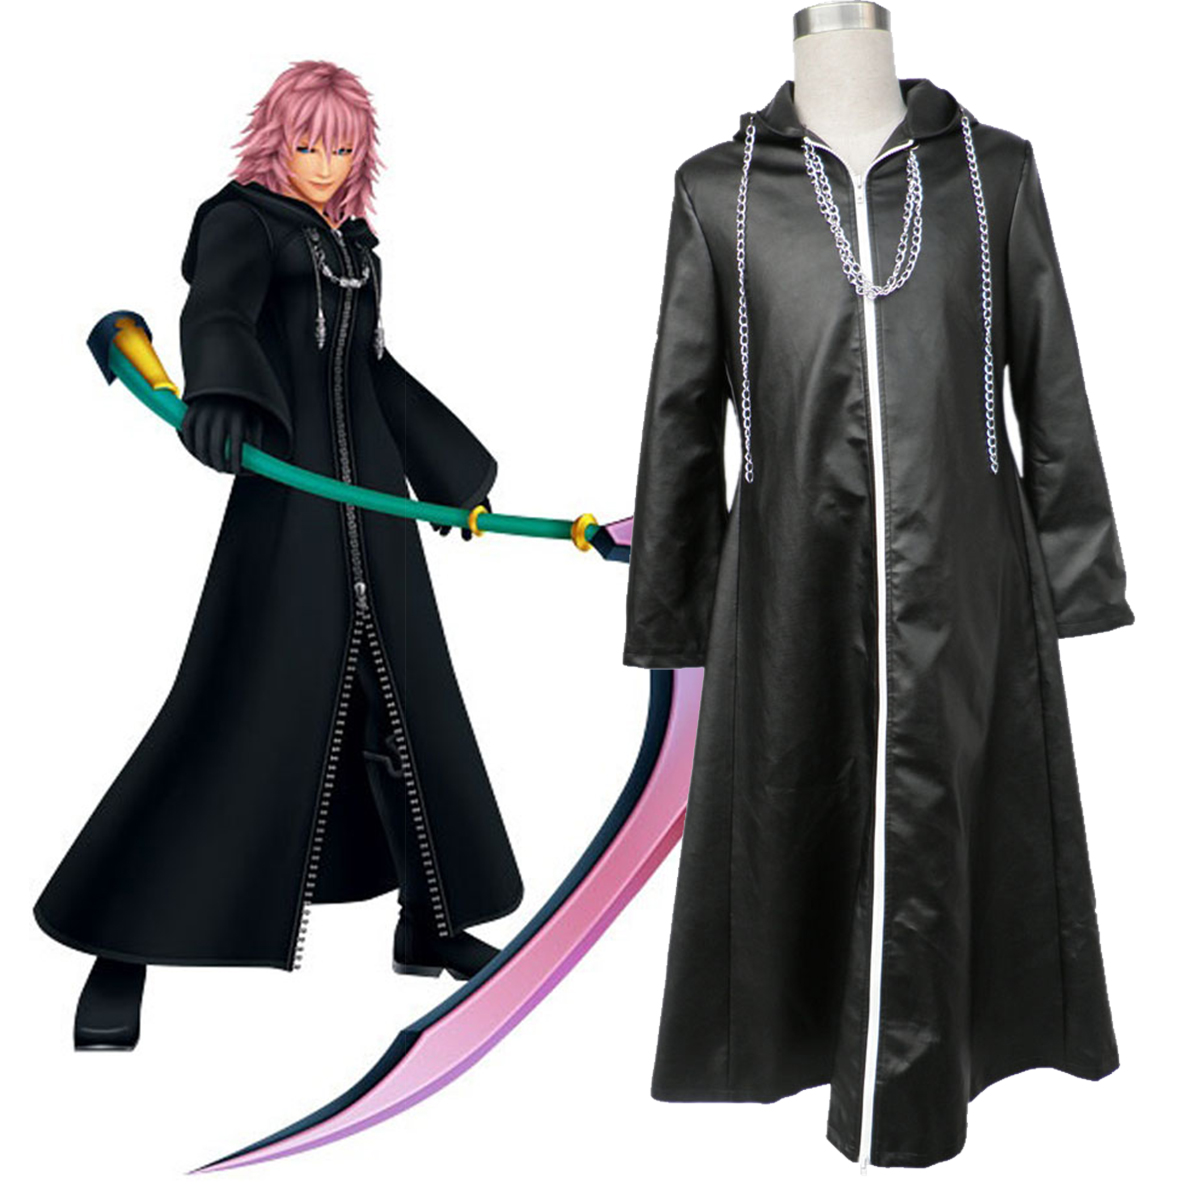 Kingdom Hearts Organization XIII Marluxia 2 Cosplay Costumes AU